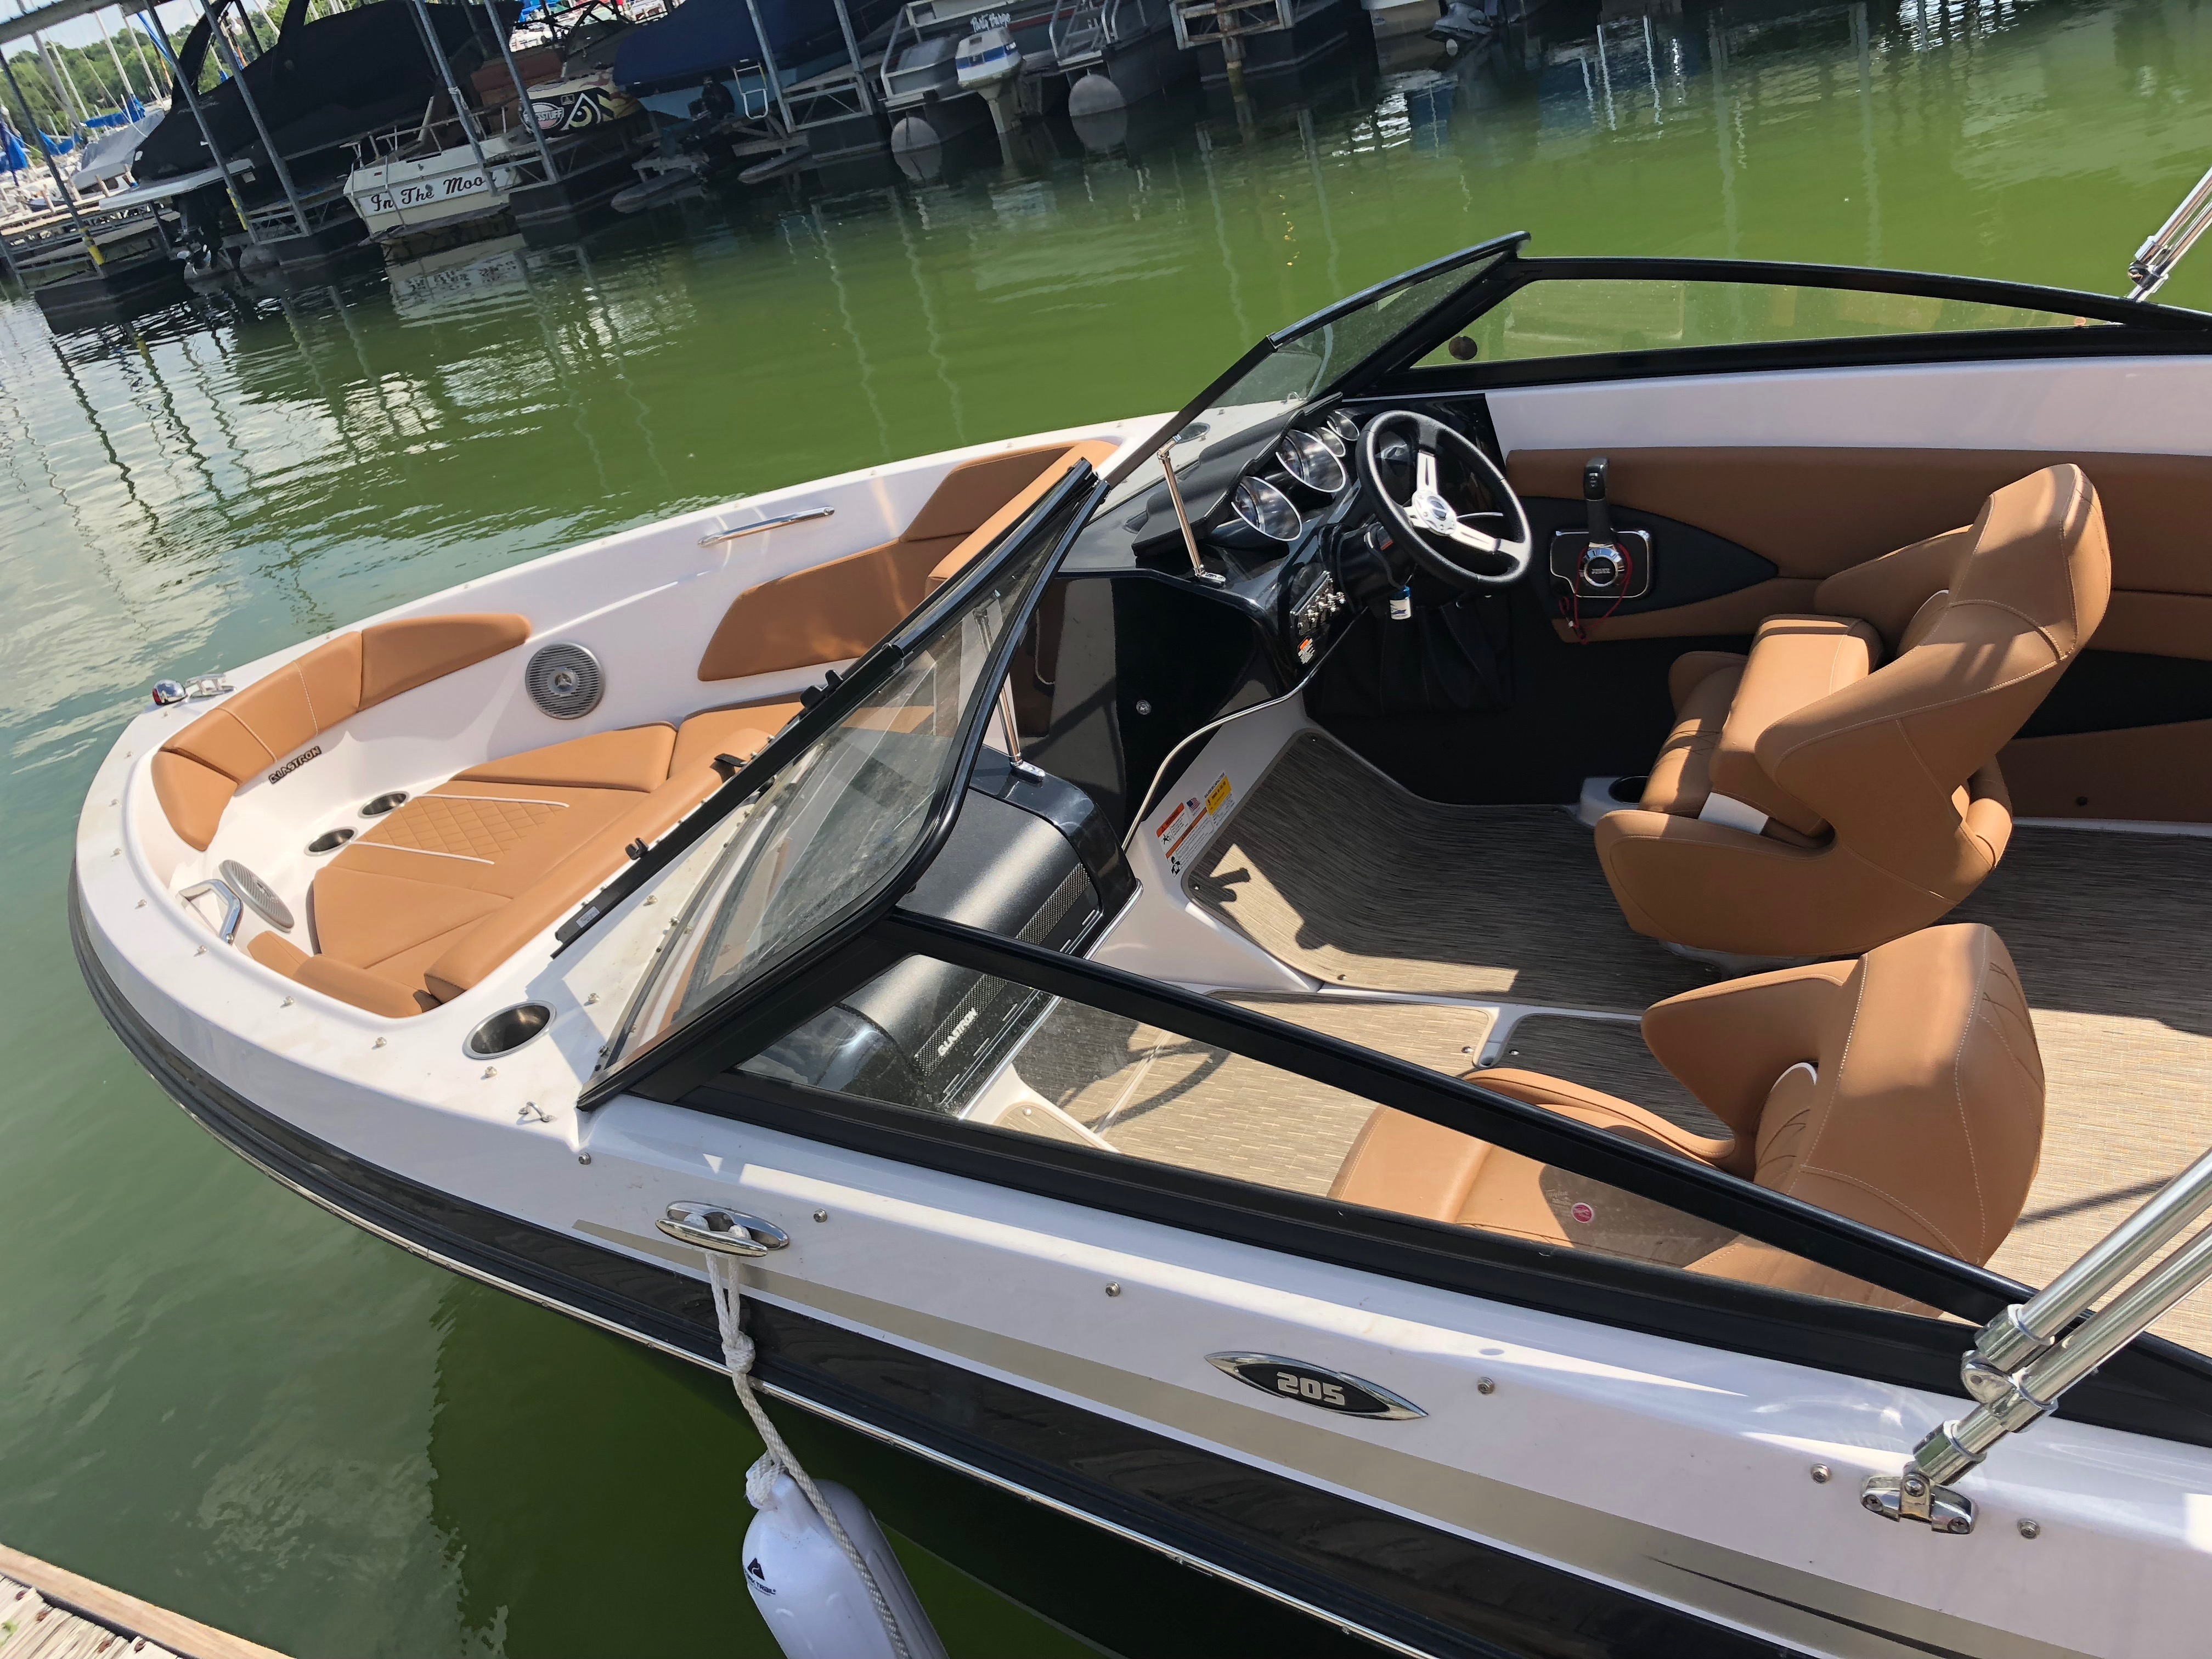 boat rentals Texas FORT WORTH Texas  Glastron GT 205 2018 21